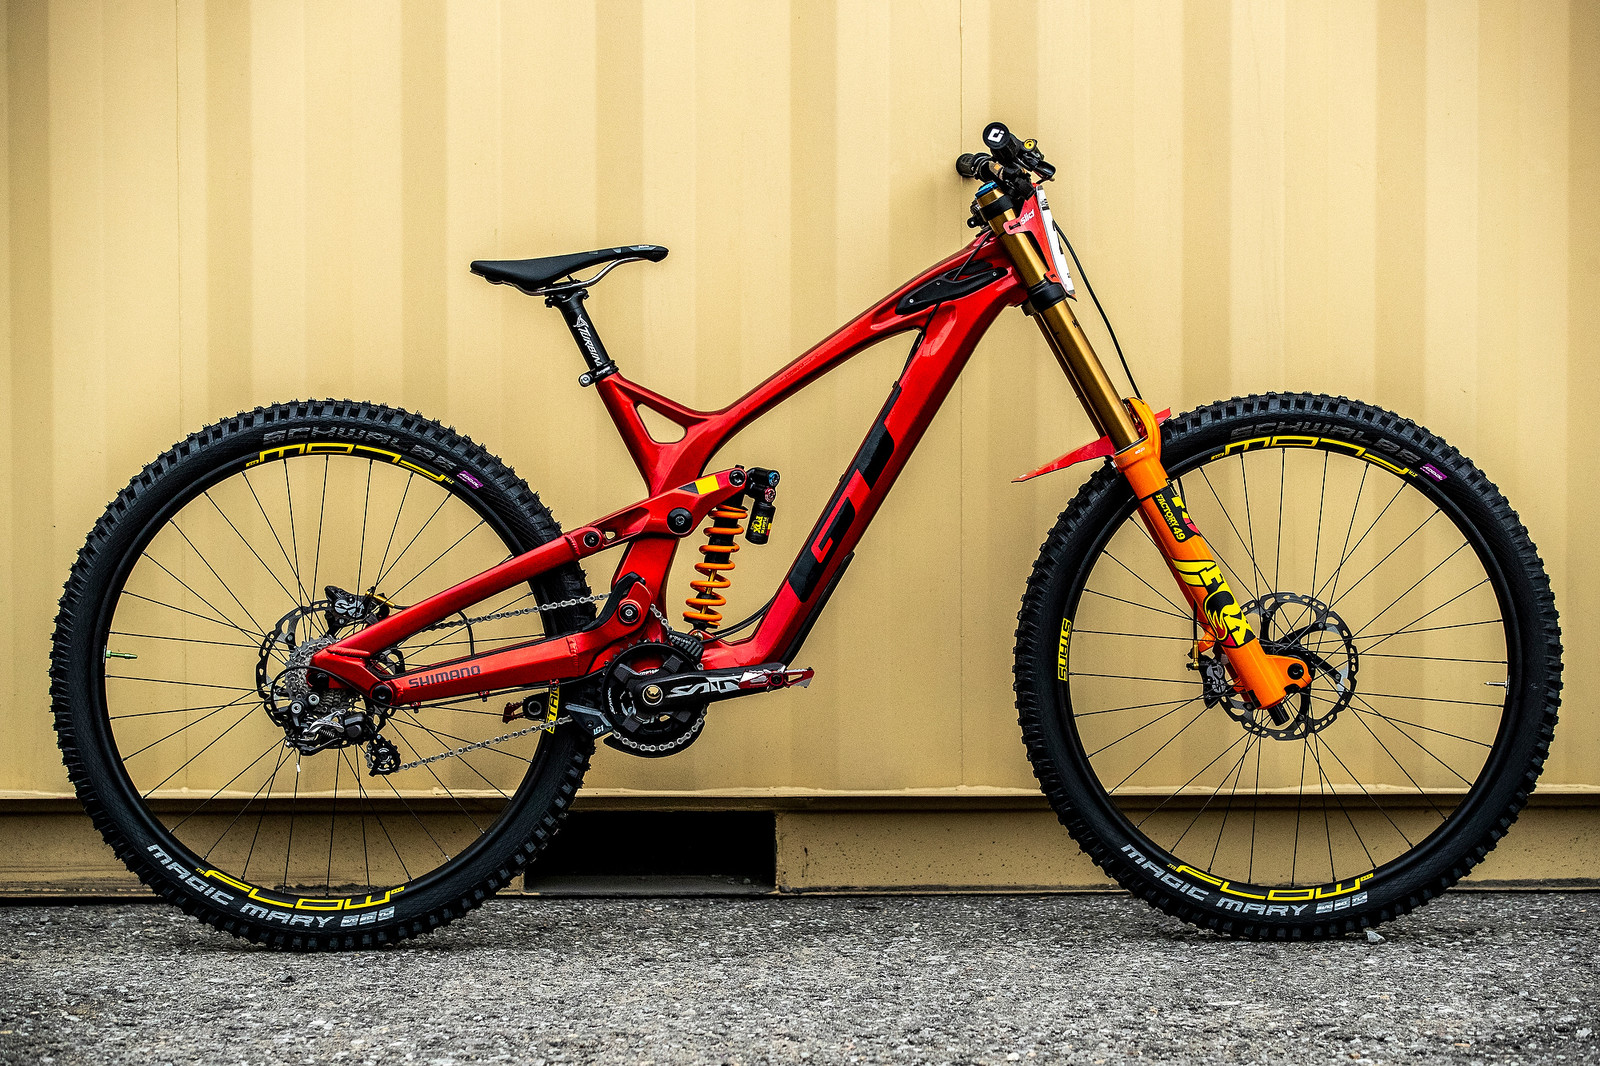 Martin Maes' GT Fury For World Championships - GT Bicycles World Championships DH Race Bikes - Mountain Biking Pictures - Vital MTB